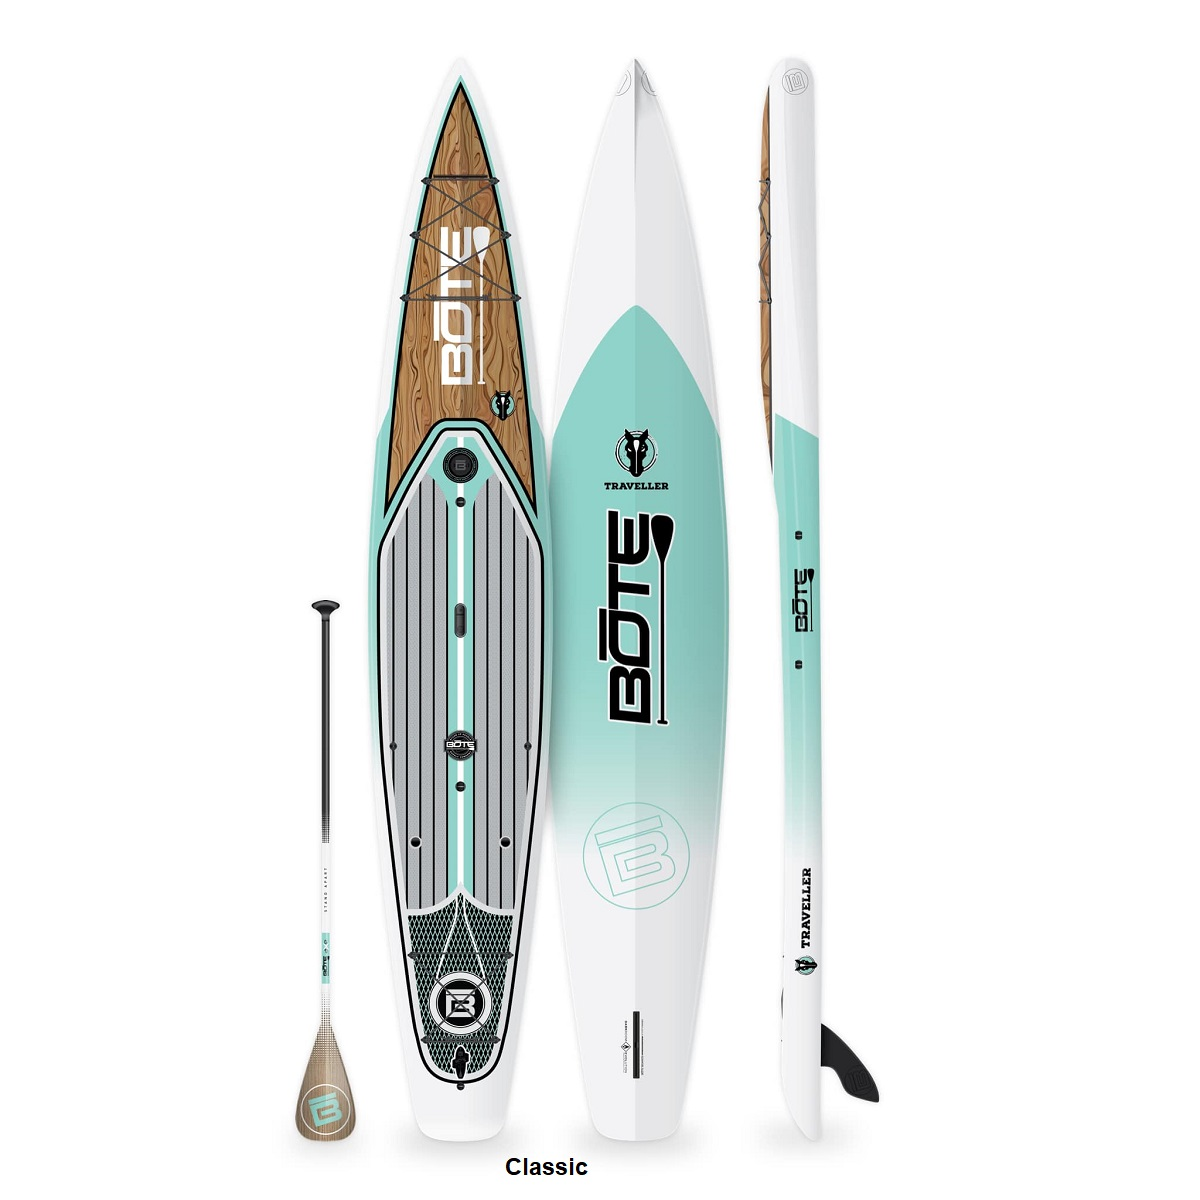 BOTE Traveller 14' Paddle Board - Classic